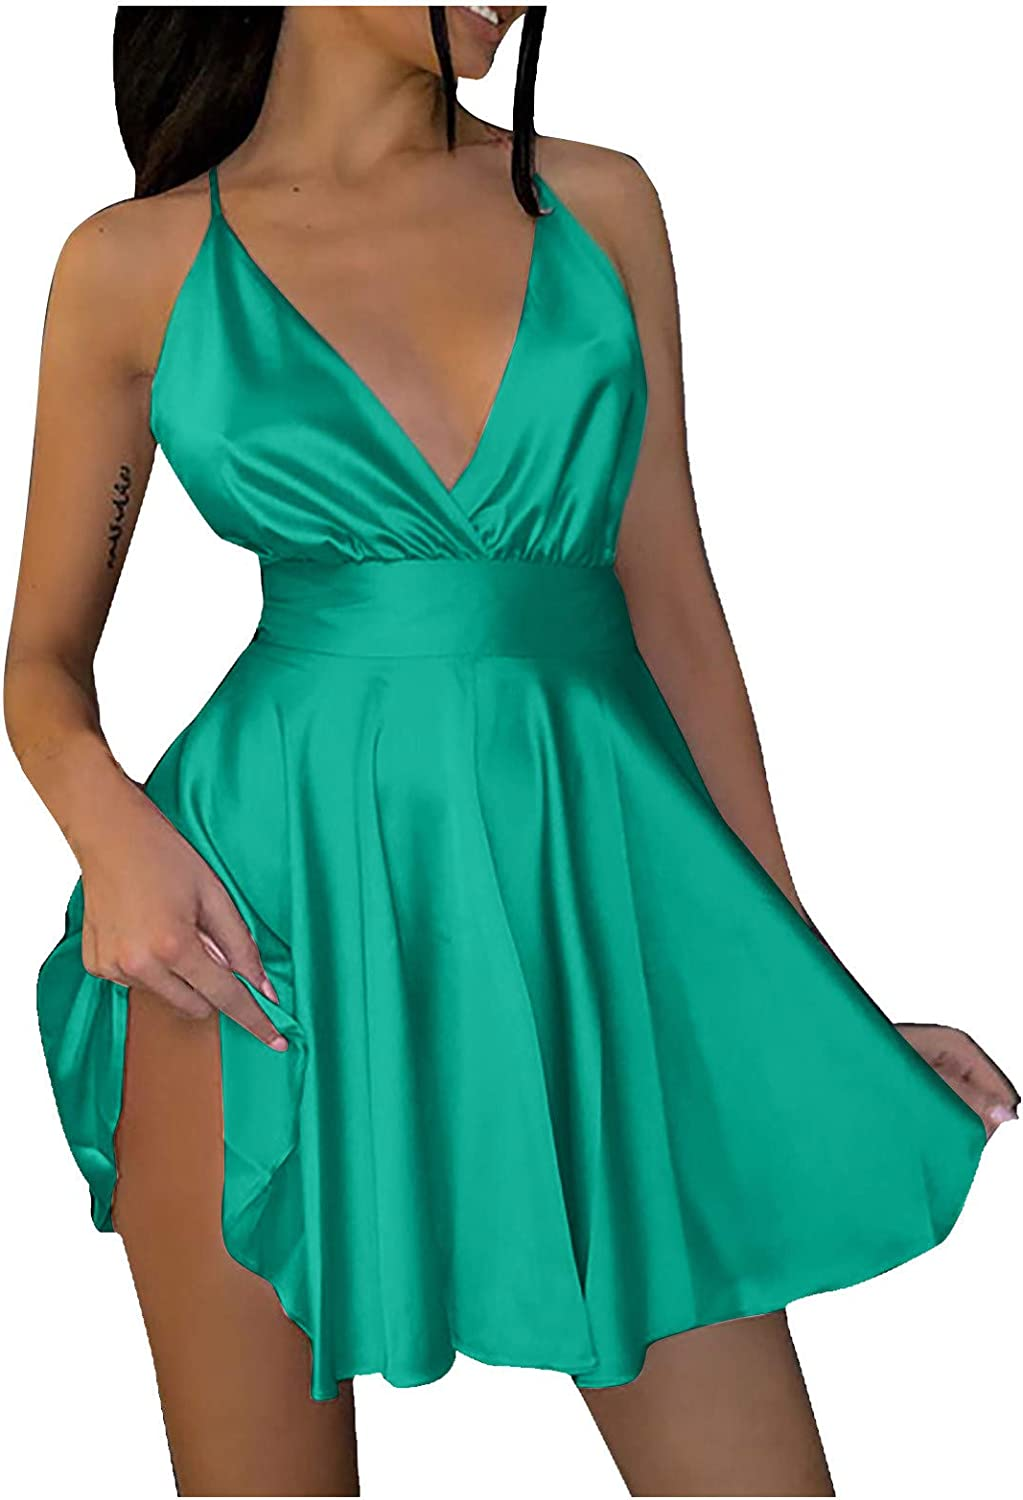 SSZZoo Women's Fashion Solid Color Cool V-Neck Bow Suspender Sleeveless Sexy Slim Dress(Green,M)